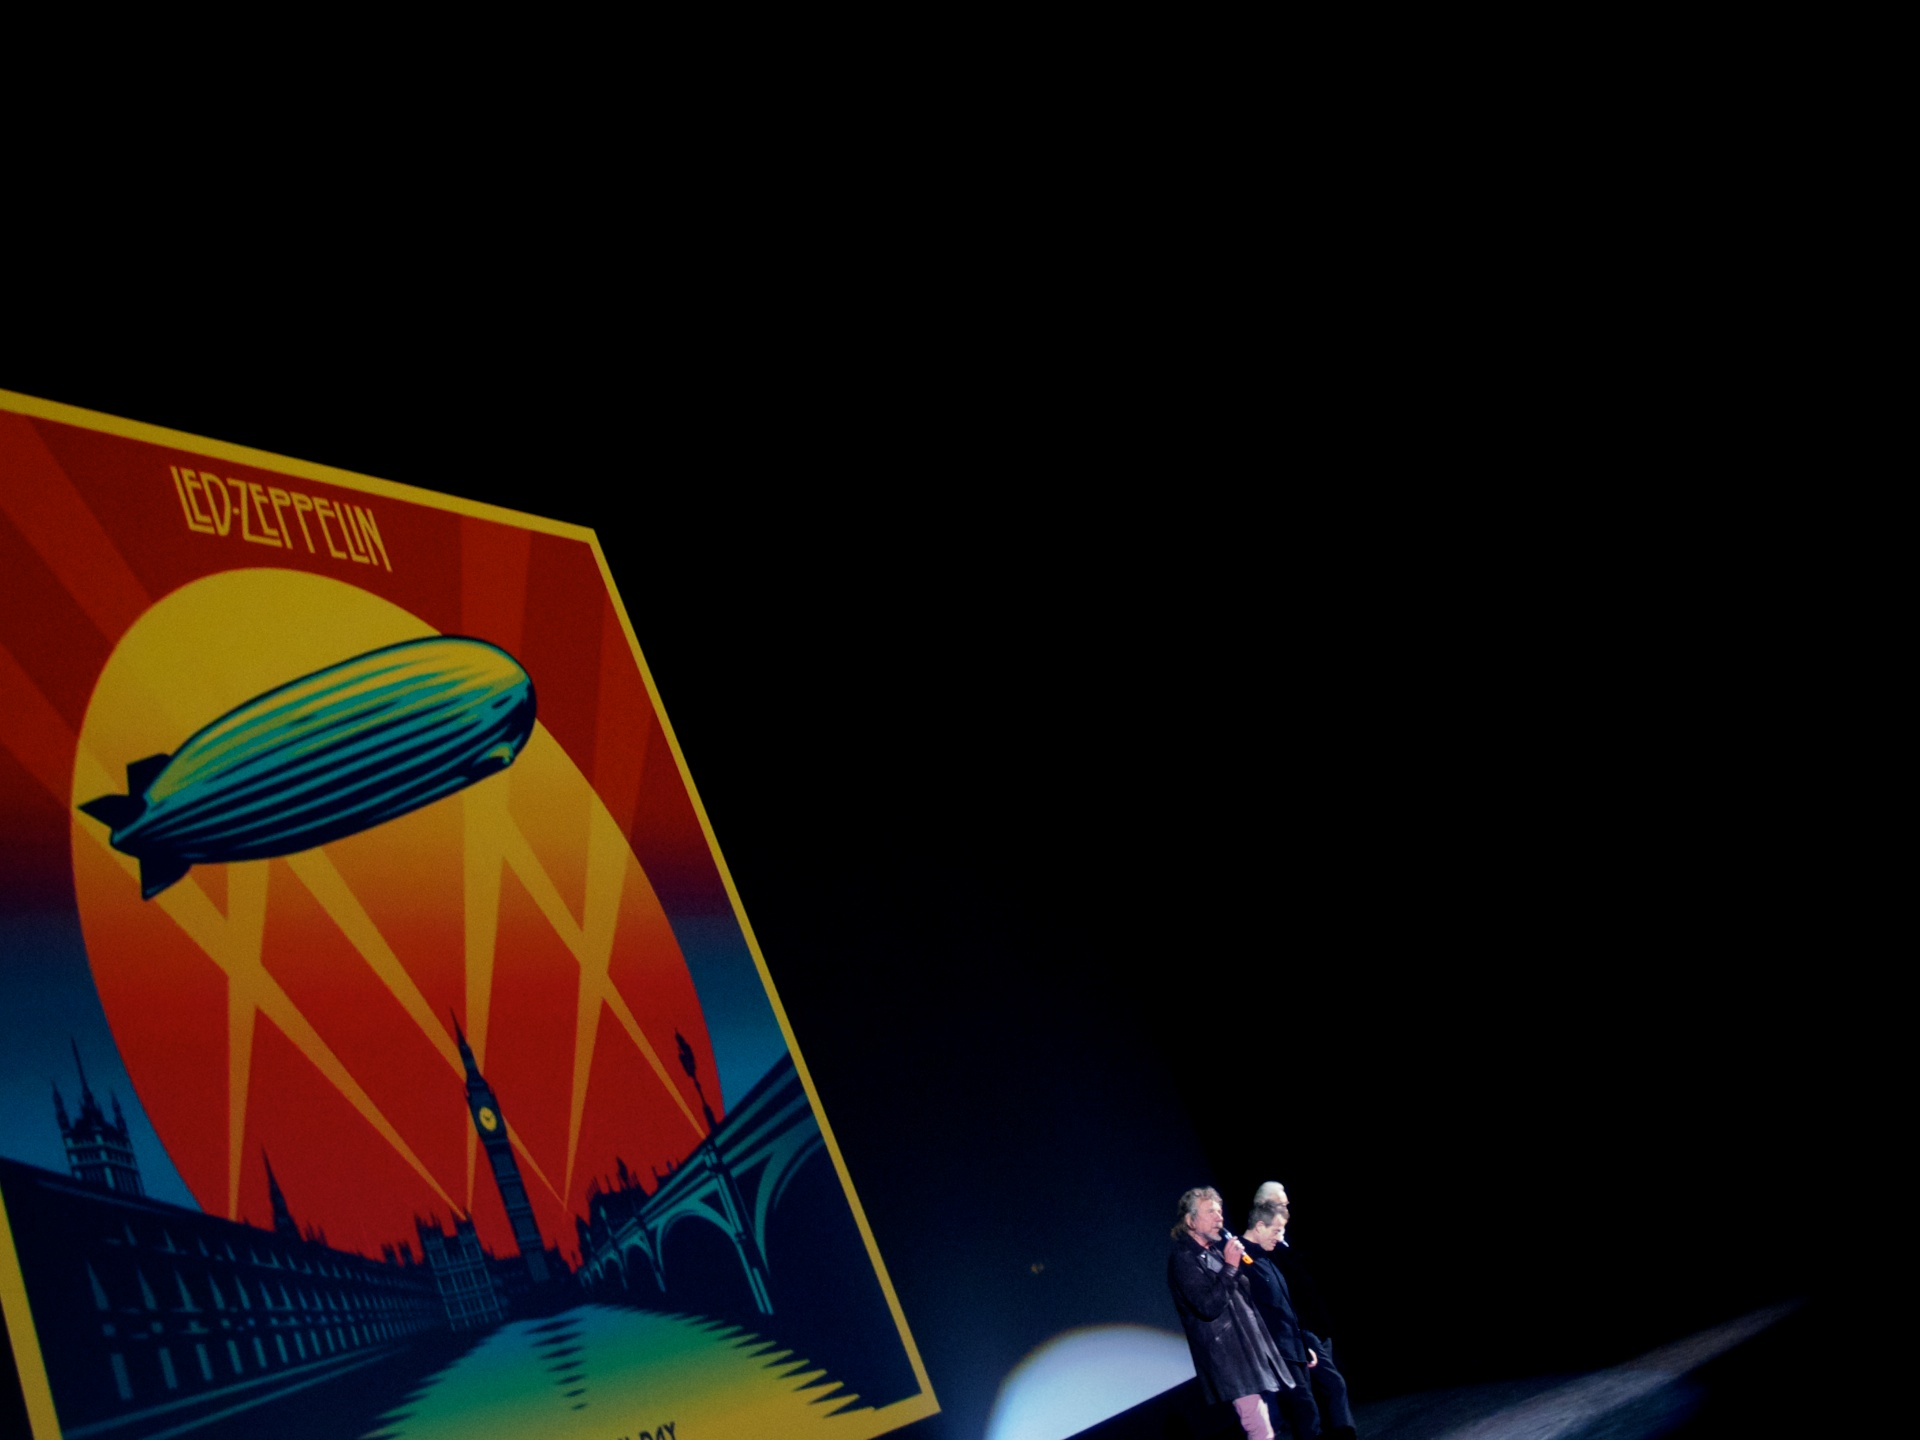 Promotional work for by Fairey for the album and film Celebration Day served as a backdrop for a 2012 Led Zeppelin press conference